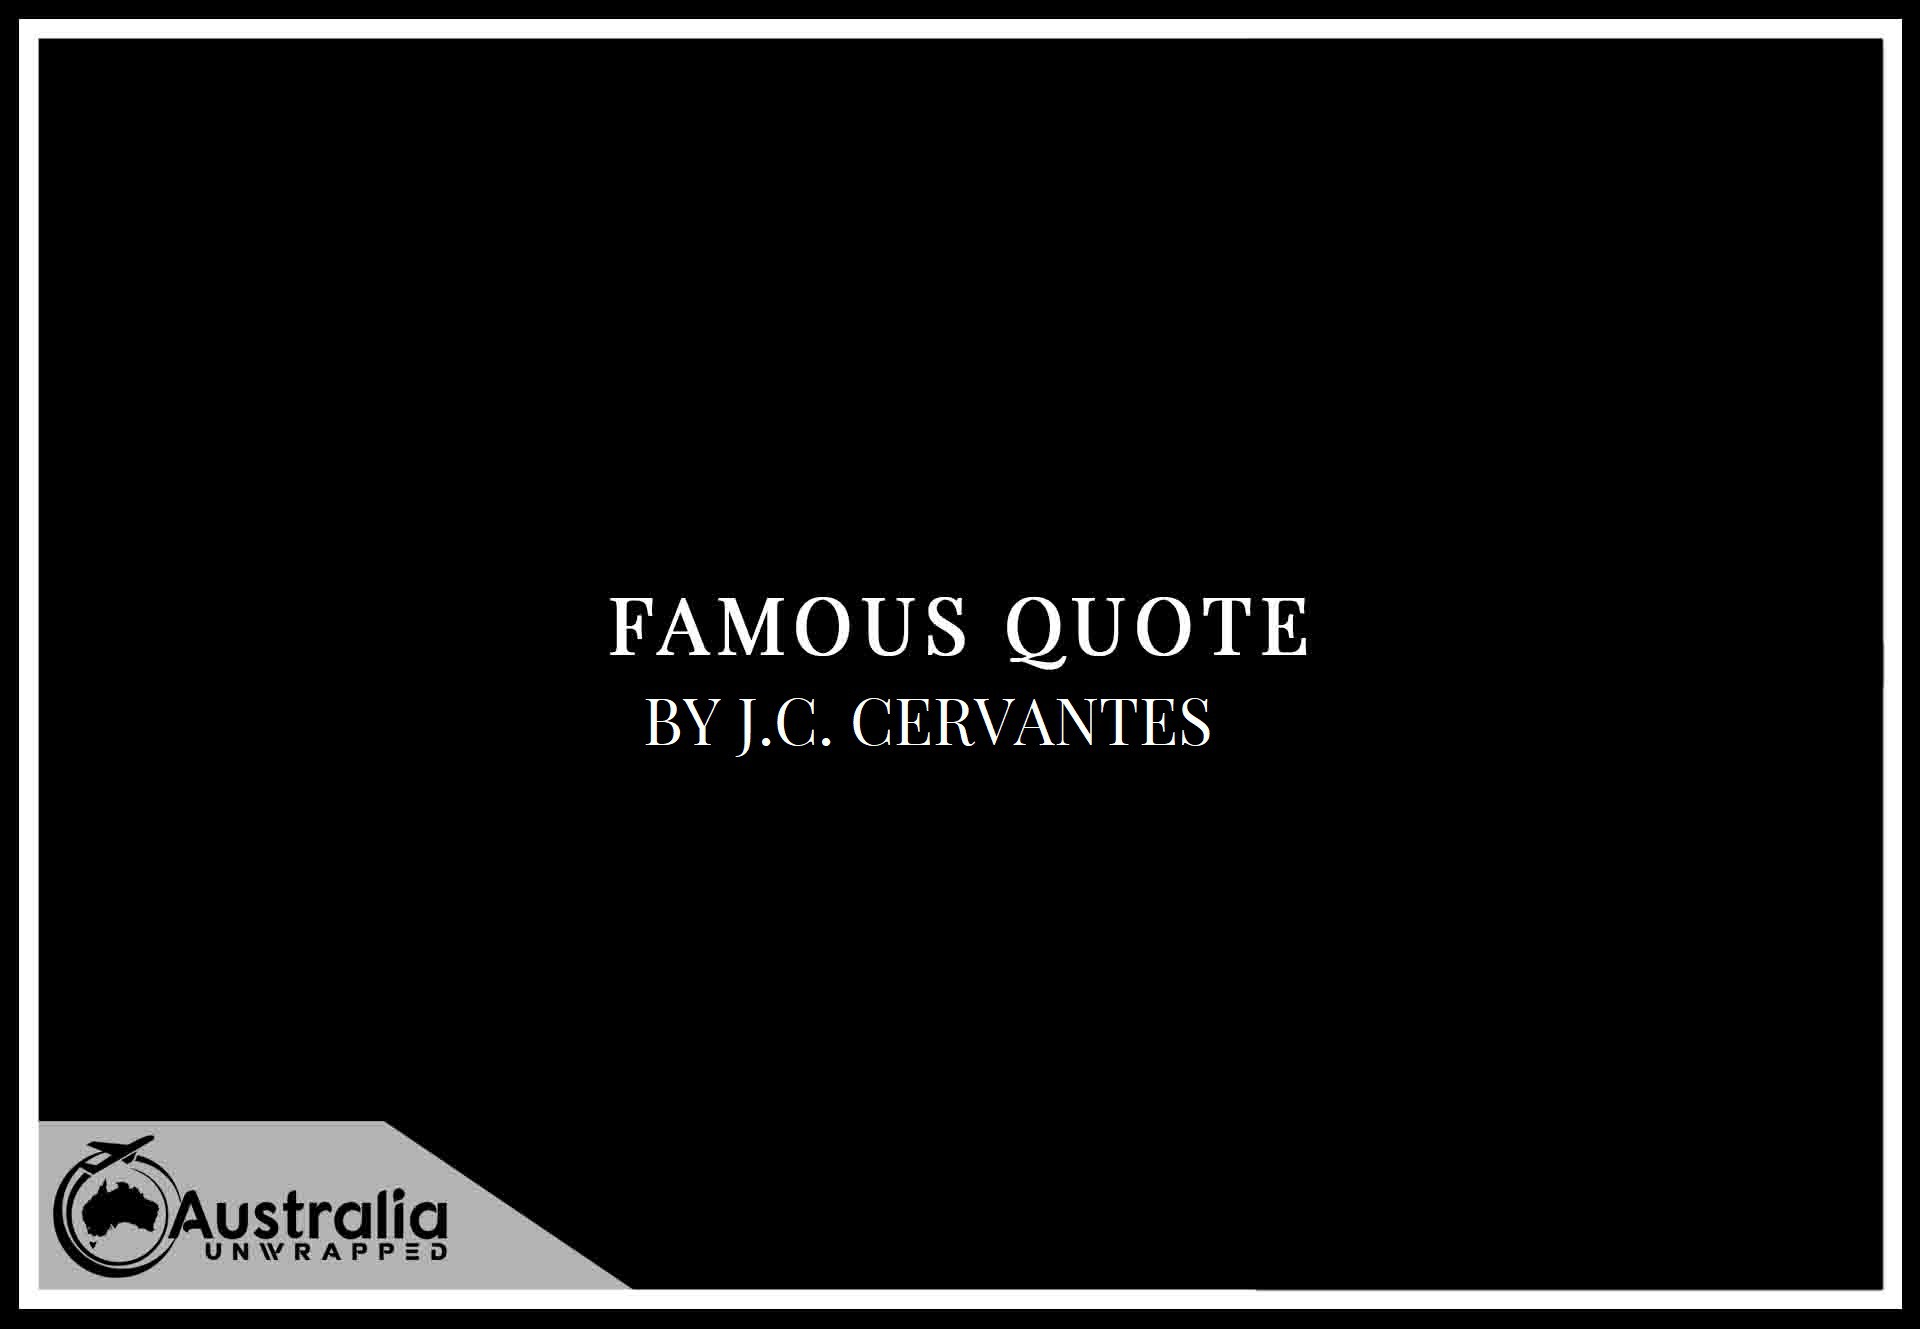 Top 1 Famous Quotes by Author J.C. Cervantes